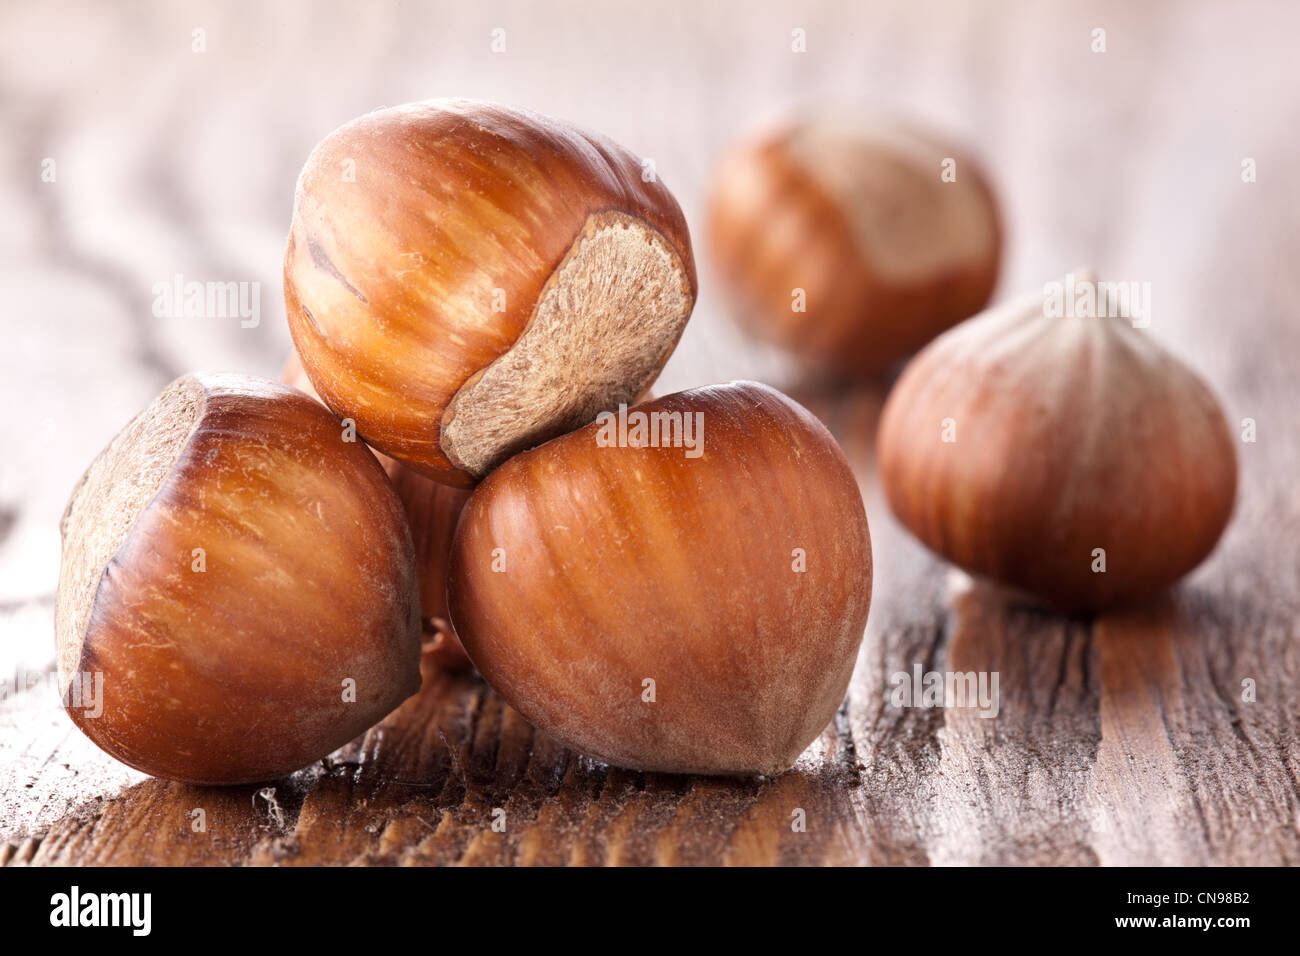 Filberts on a wooden table. Close-up shot. - Stock Image